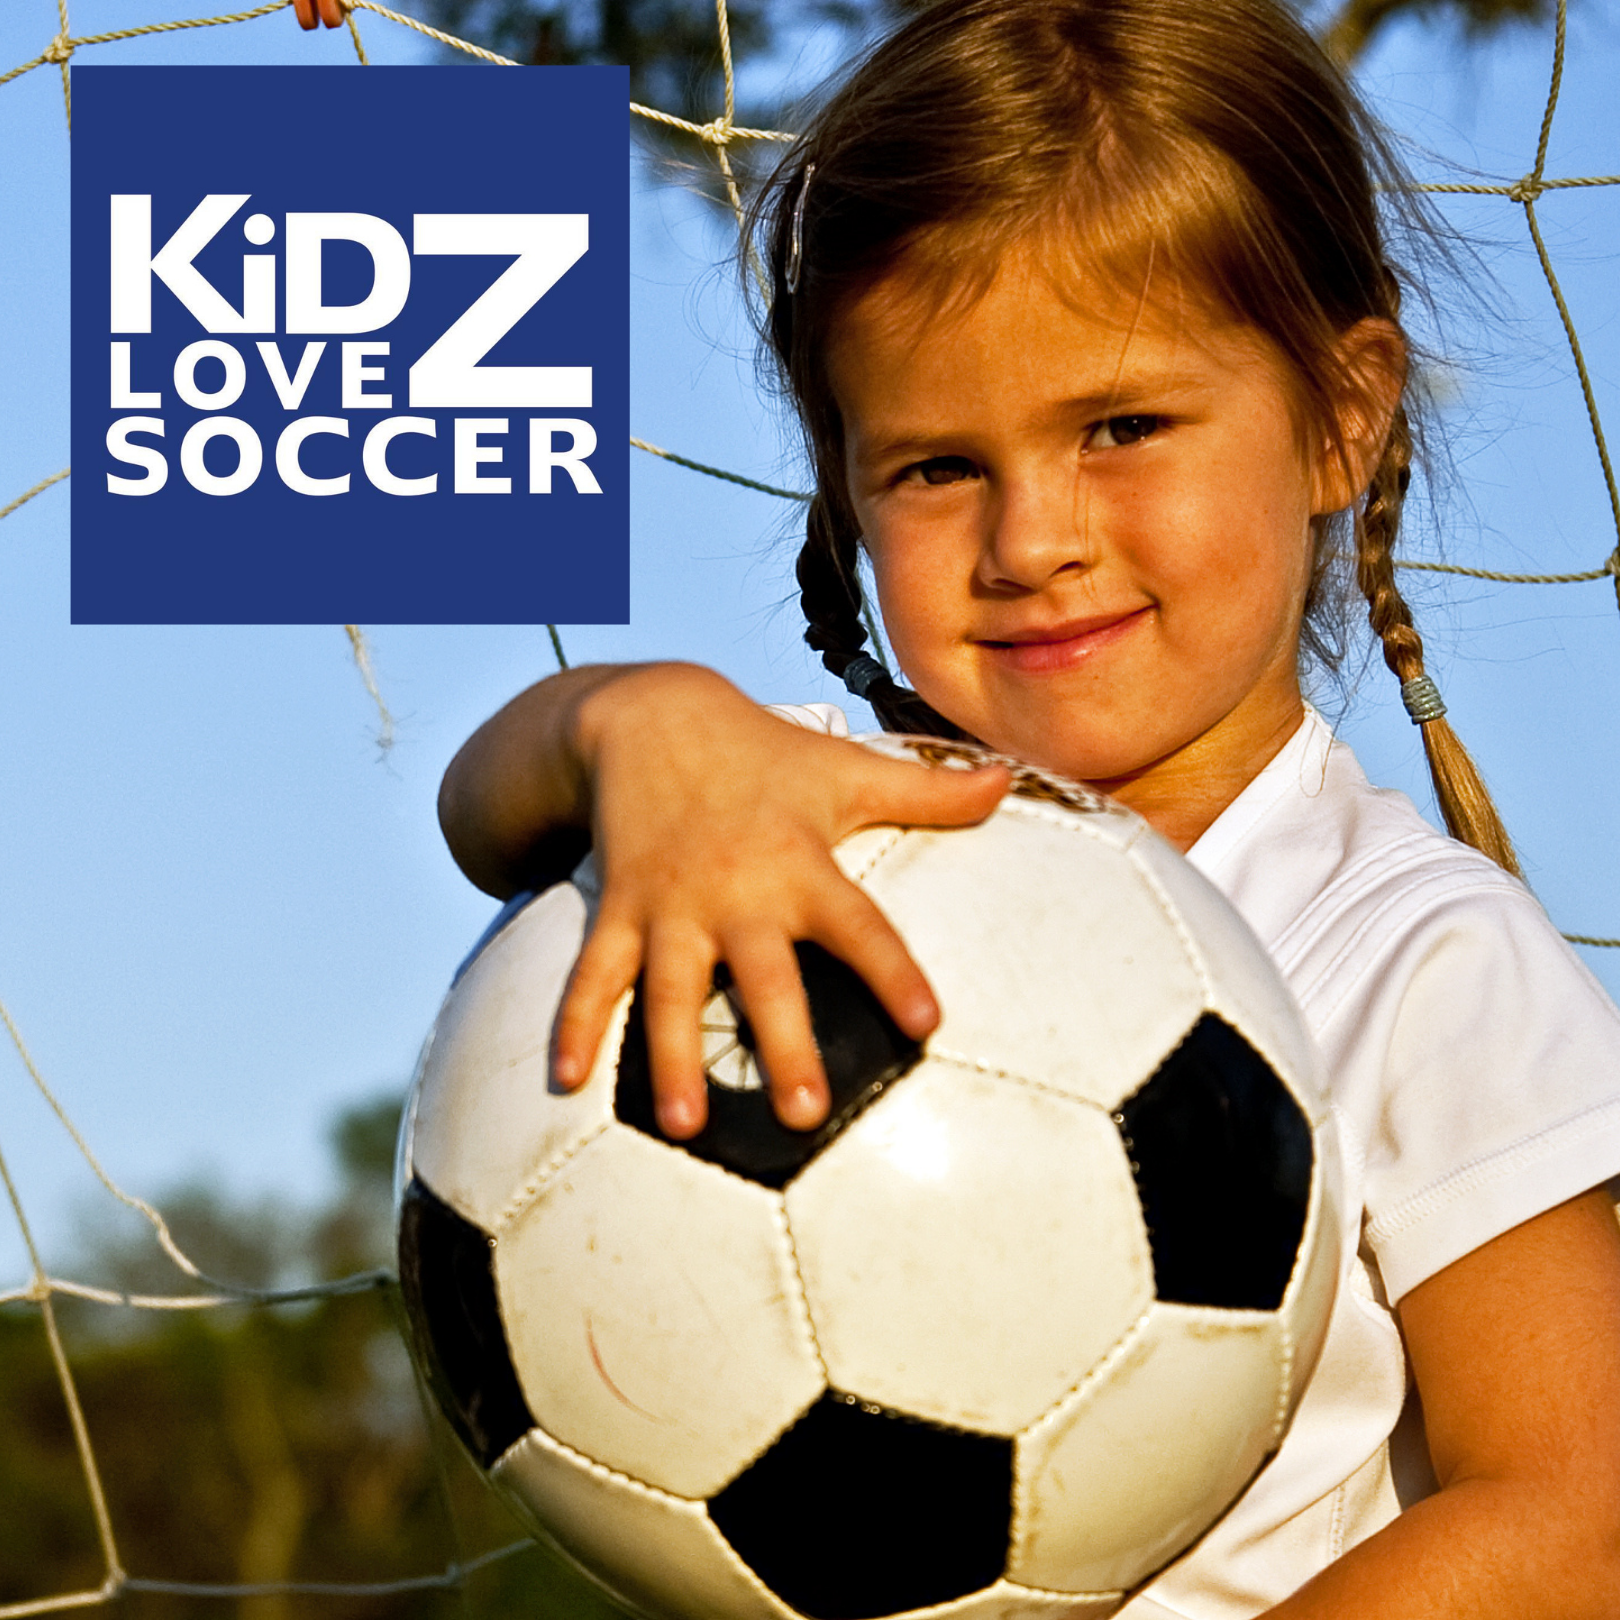 Girl holding soccer ball at net